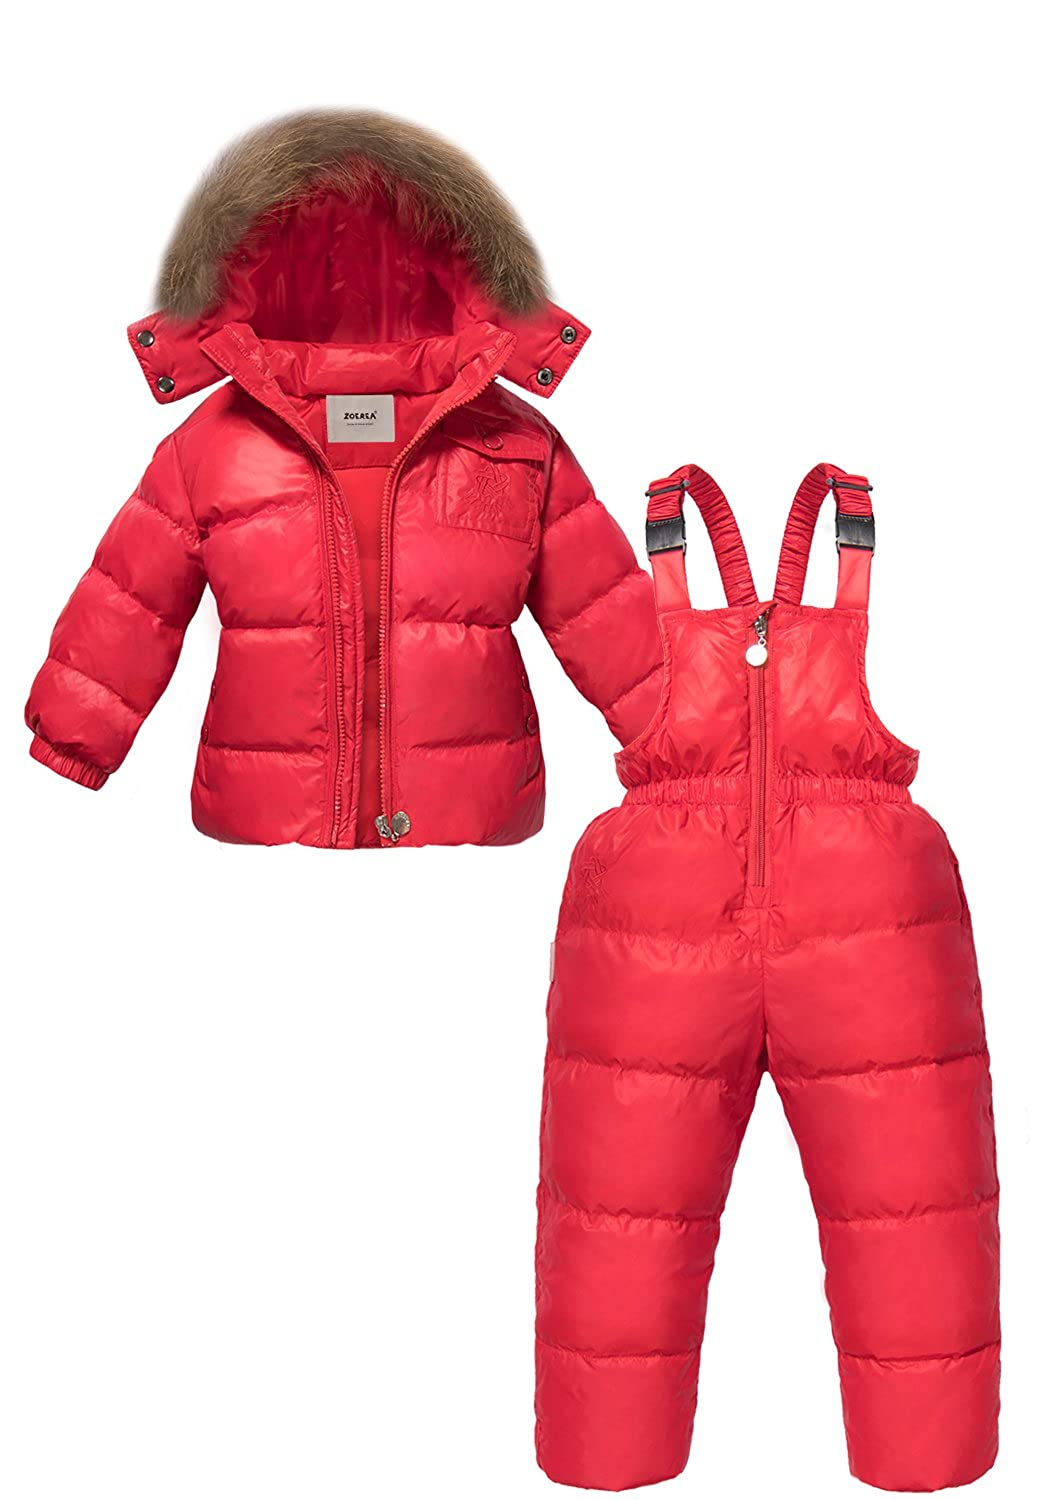 ZOEREA Girls Winter Snowsuit, Newest Children Girls Clothing Sets Winter Hooded Duck Down Jacket + Trousers Snowsuit Warm Clothes zon-e YS2473